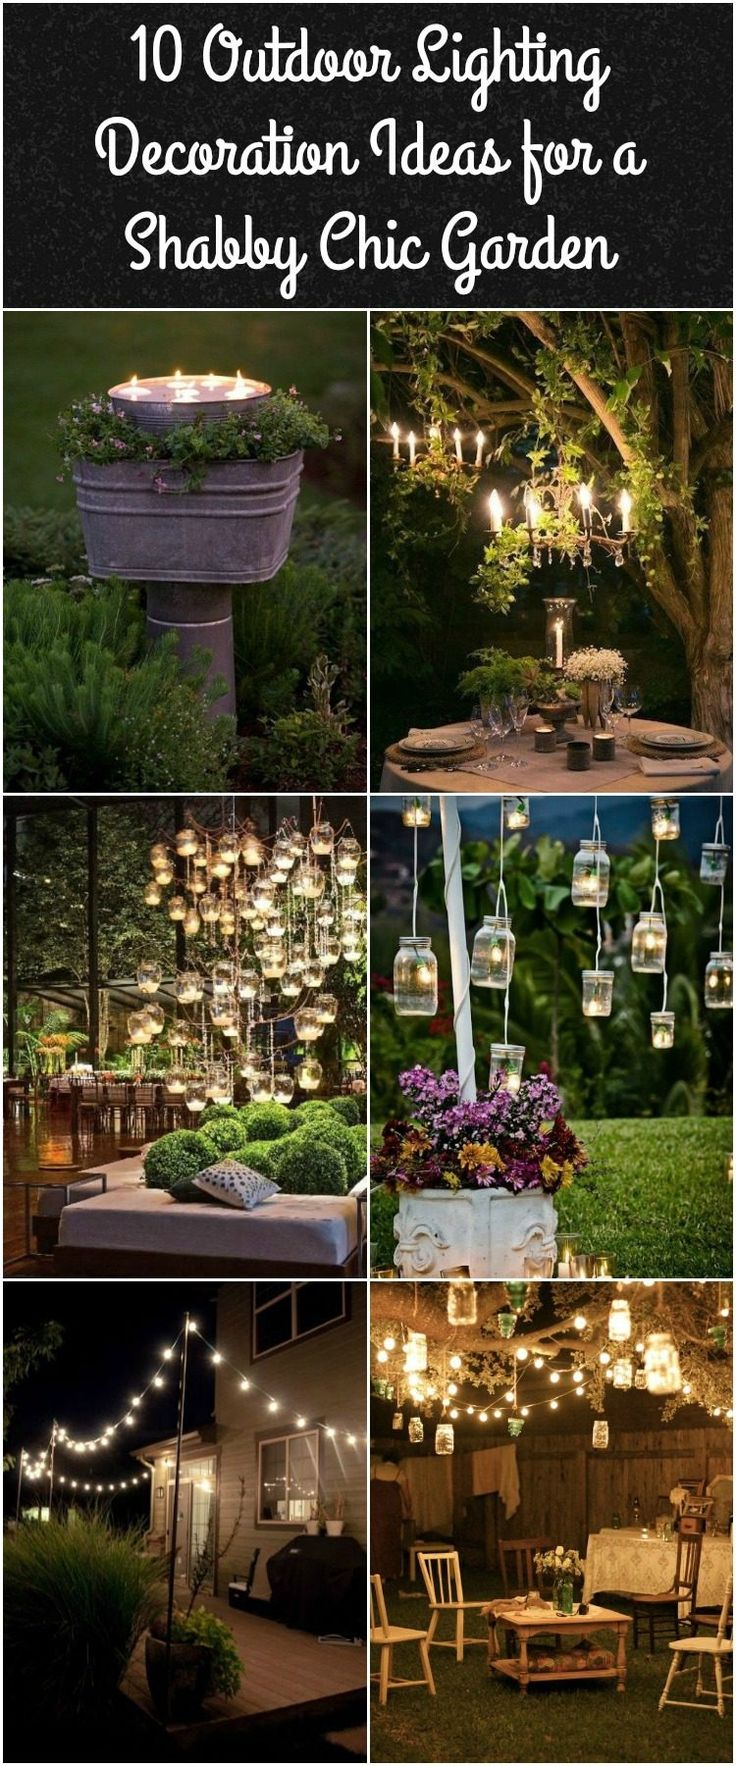 10 Outdoor Lighting Decoration Ideas for a Shabby Chic Garden. #6 is Lovely…